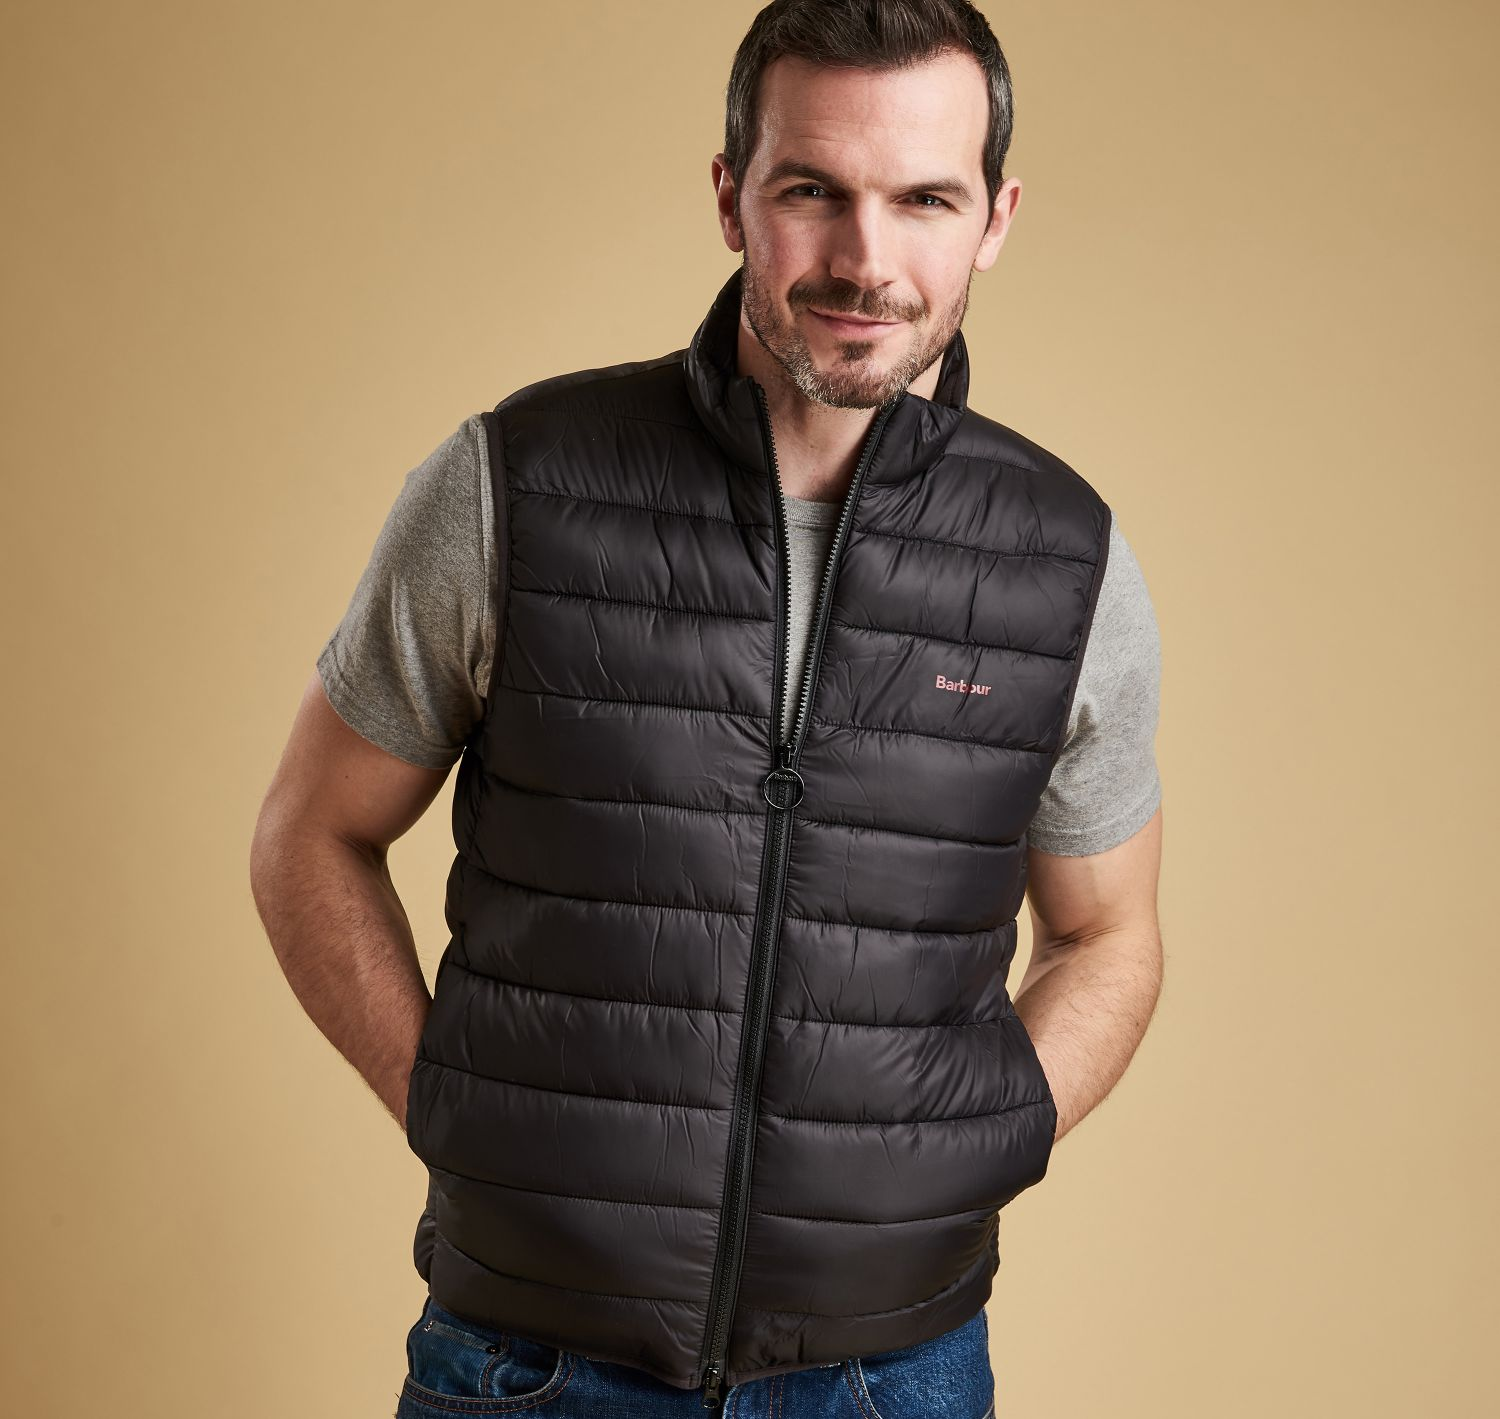 Barbour Bretby Gilet Black Barbour Lifestyle: From the Essentials collection